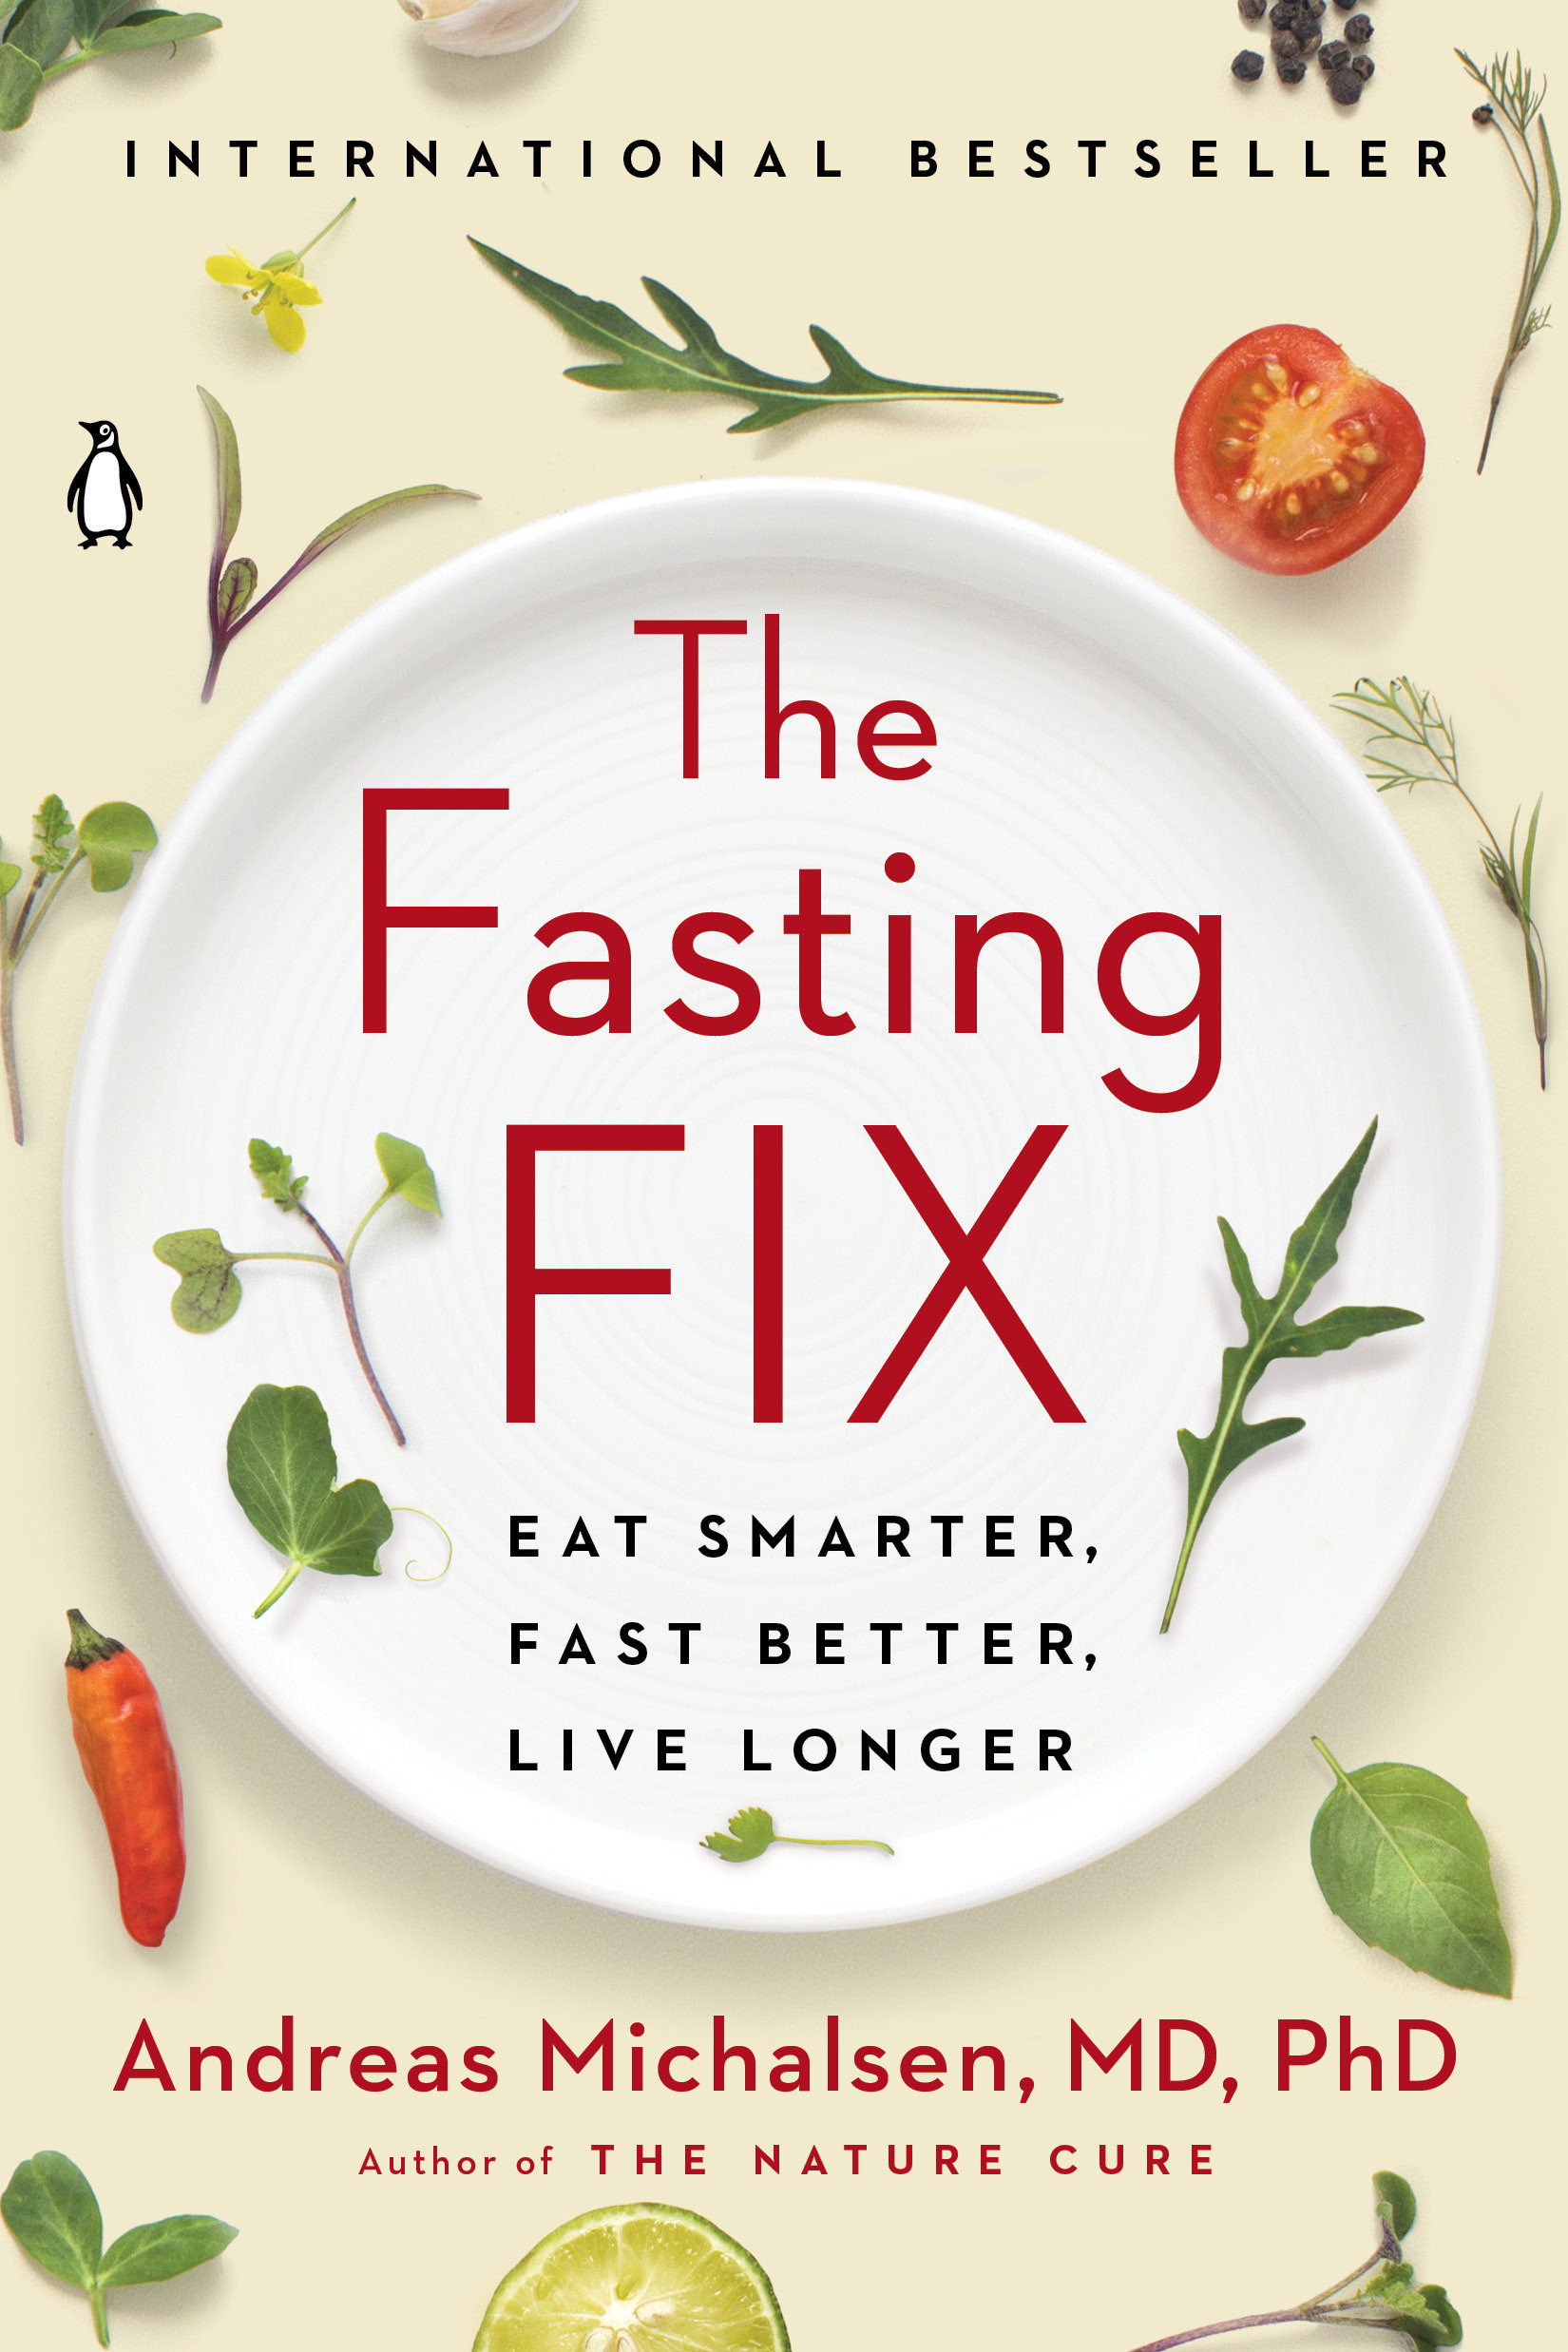 The Fasting Fix Eat Smarter, Fast Better, Live Longer